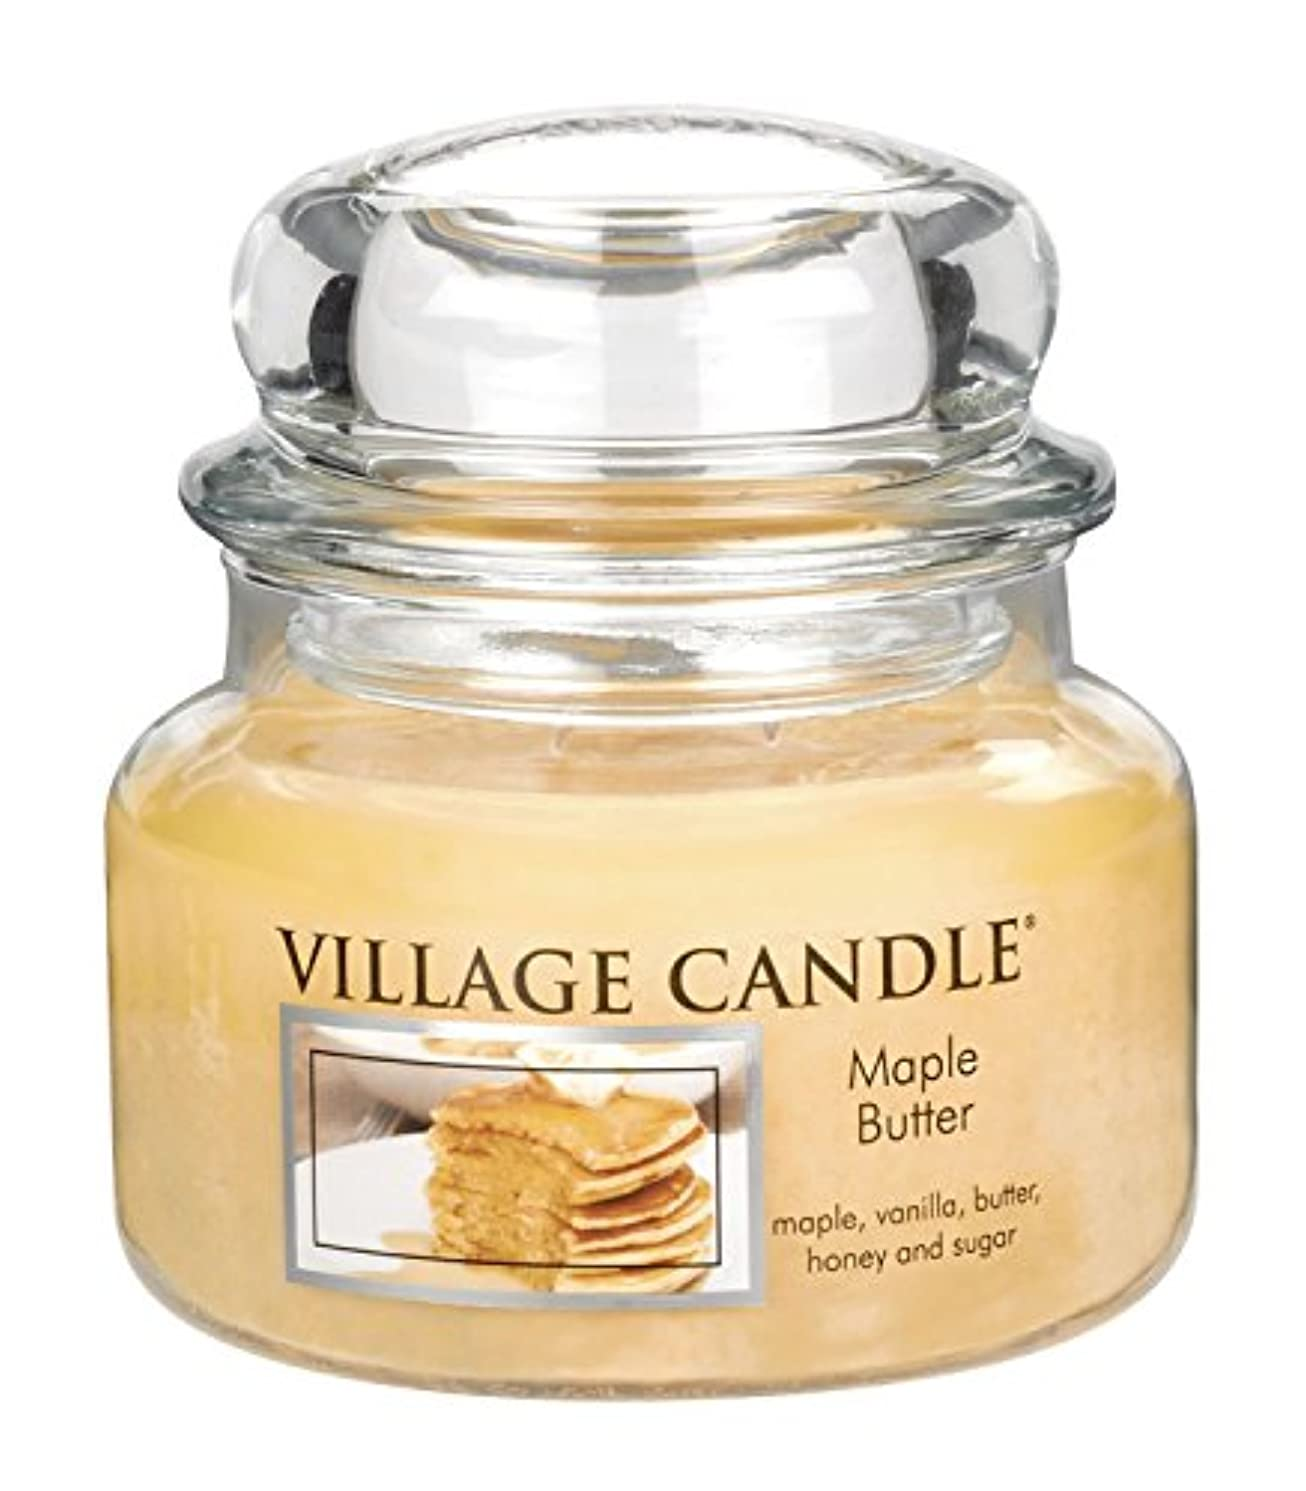 母入植者であるVillage Candle Maple Butter 11 oz Glass Jar Scented Candle, Small [並行輸入品]